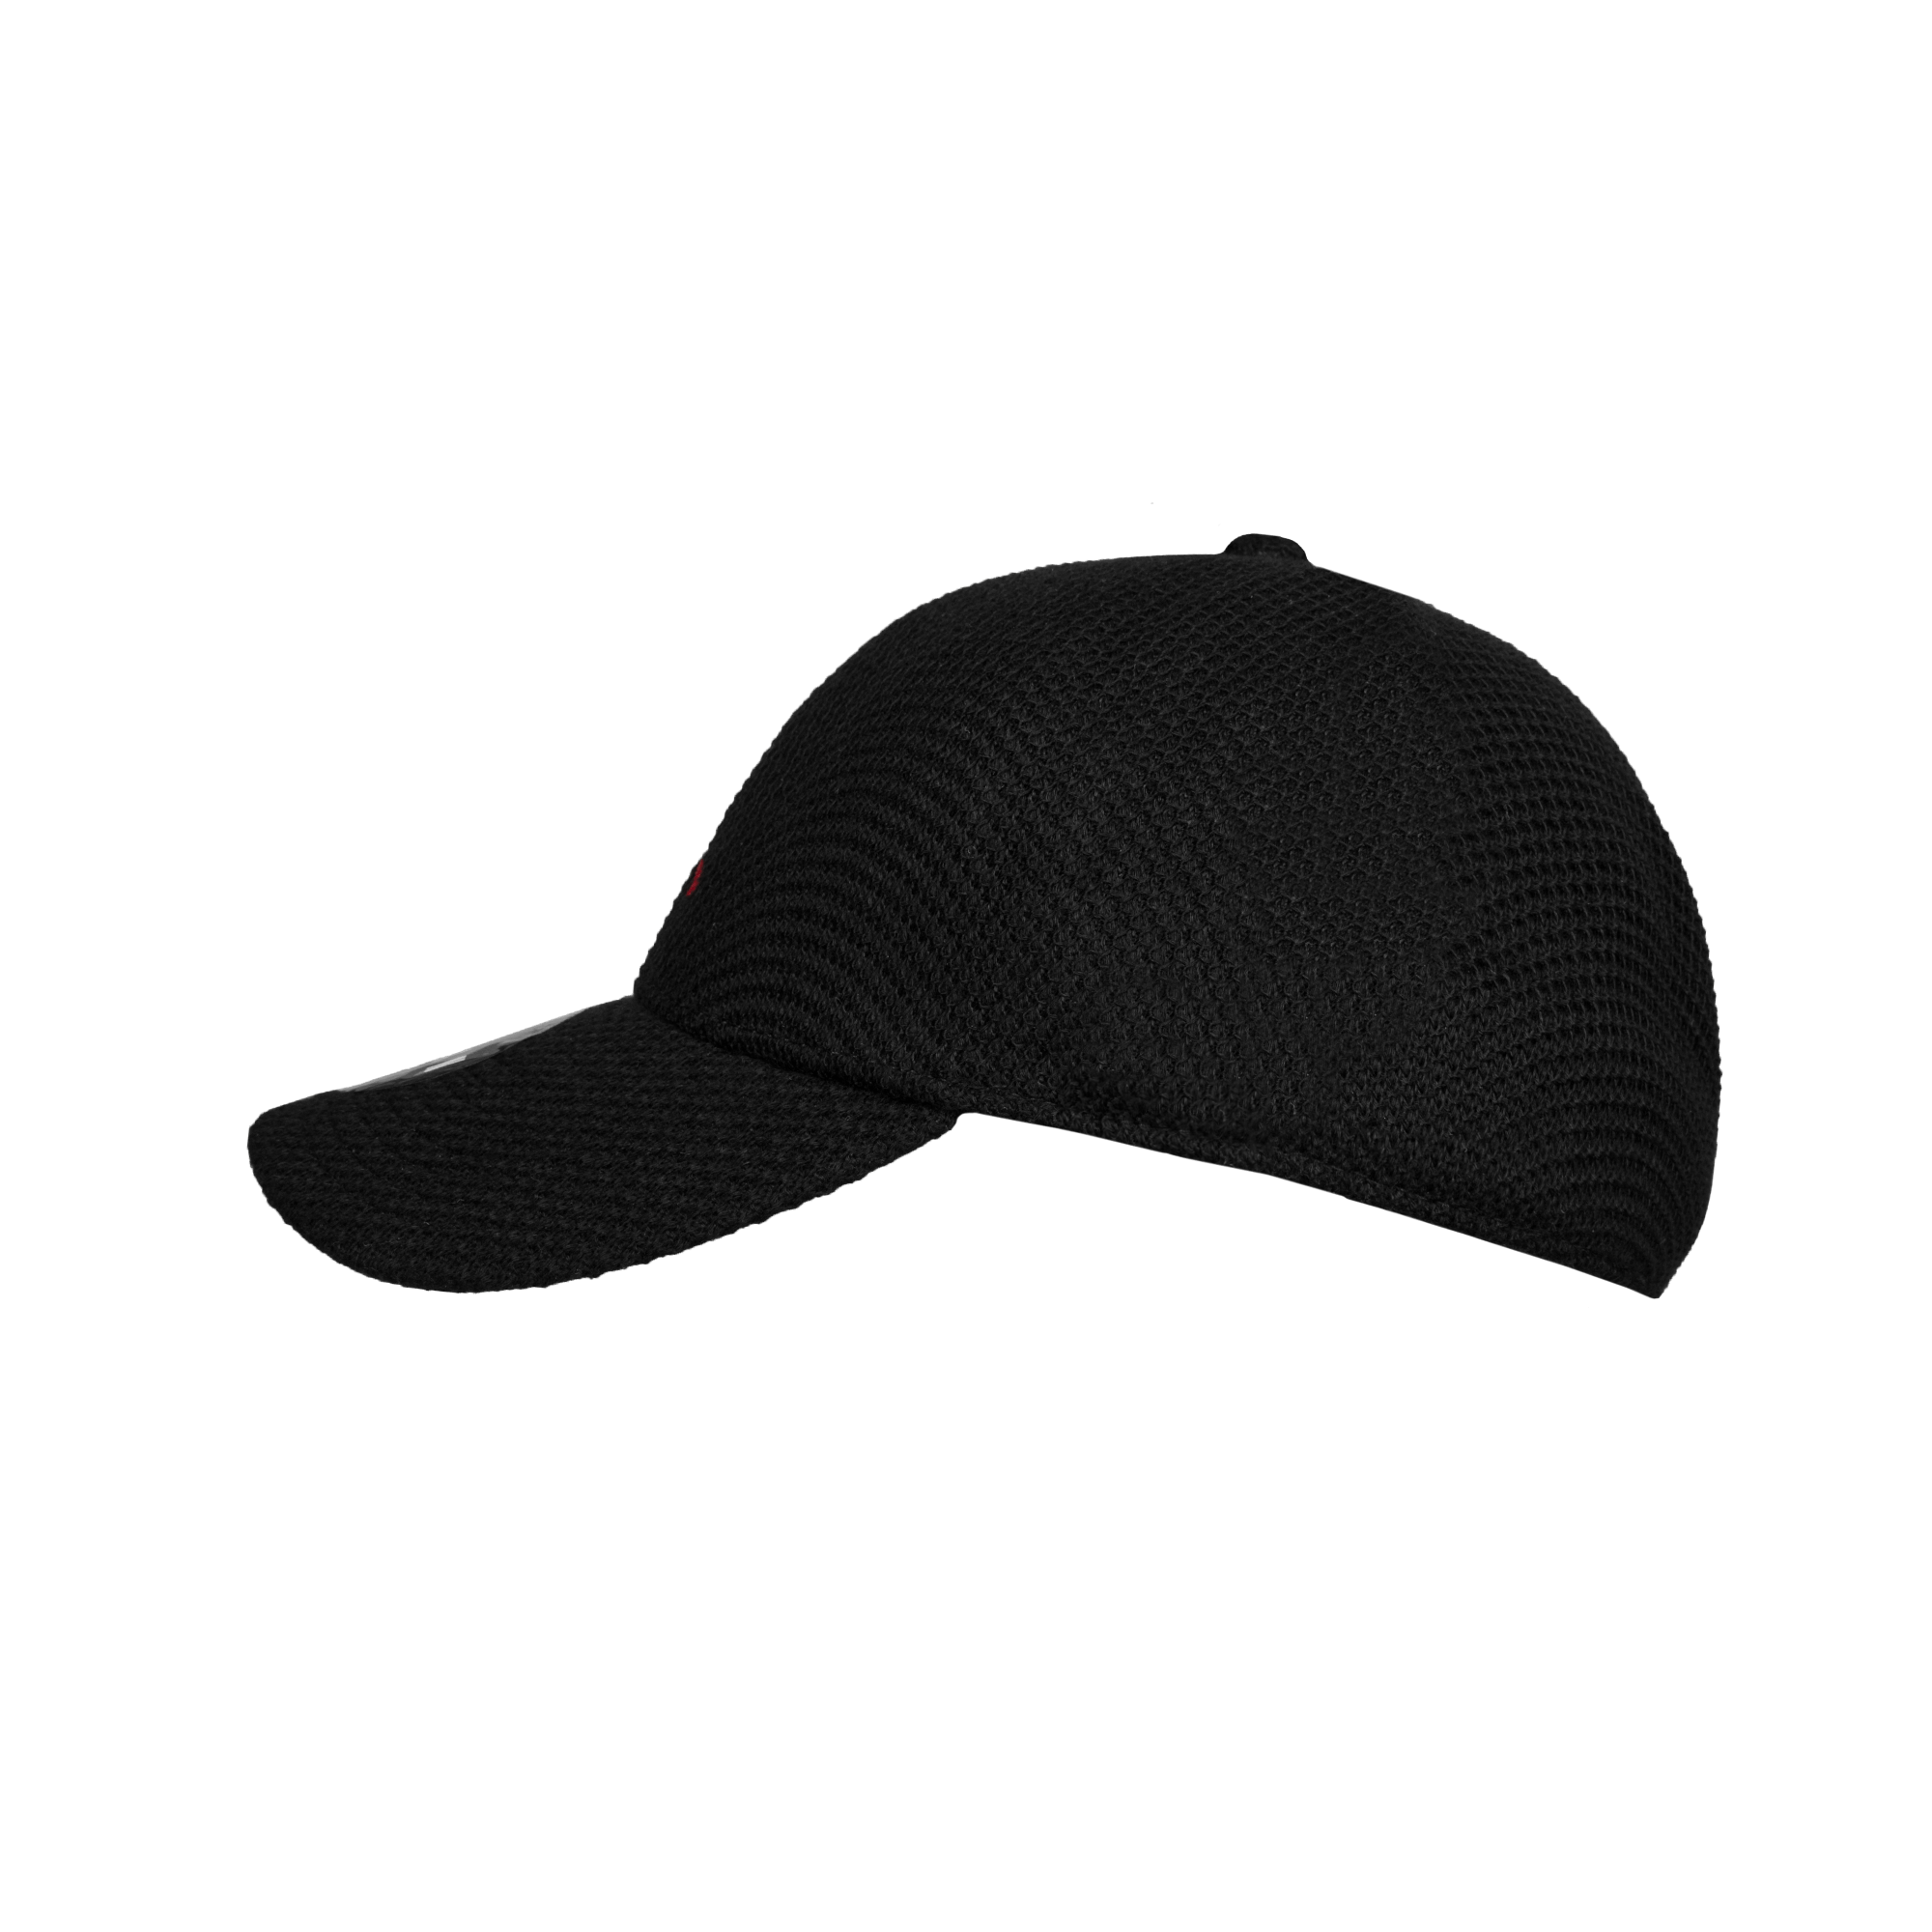 328c93ac4f0 ... wholesale jumpman knit flex cap black red f5a4b 57210